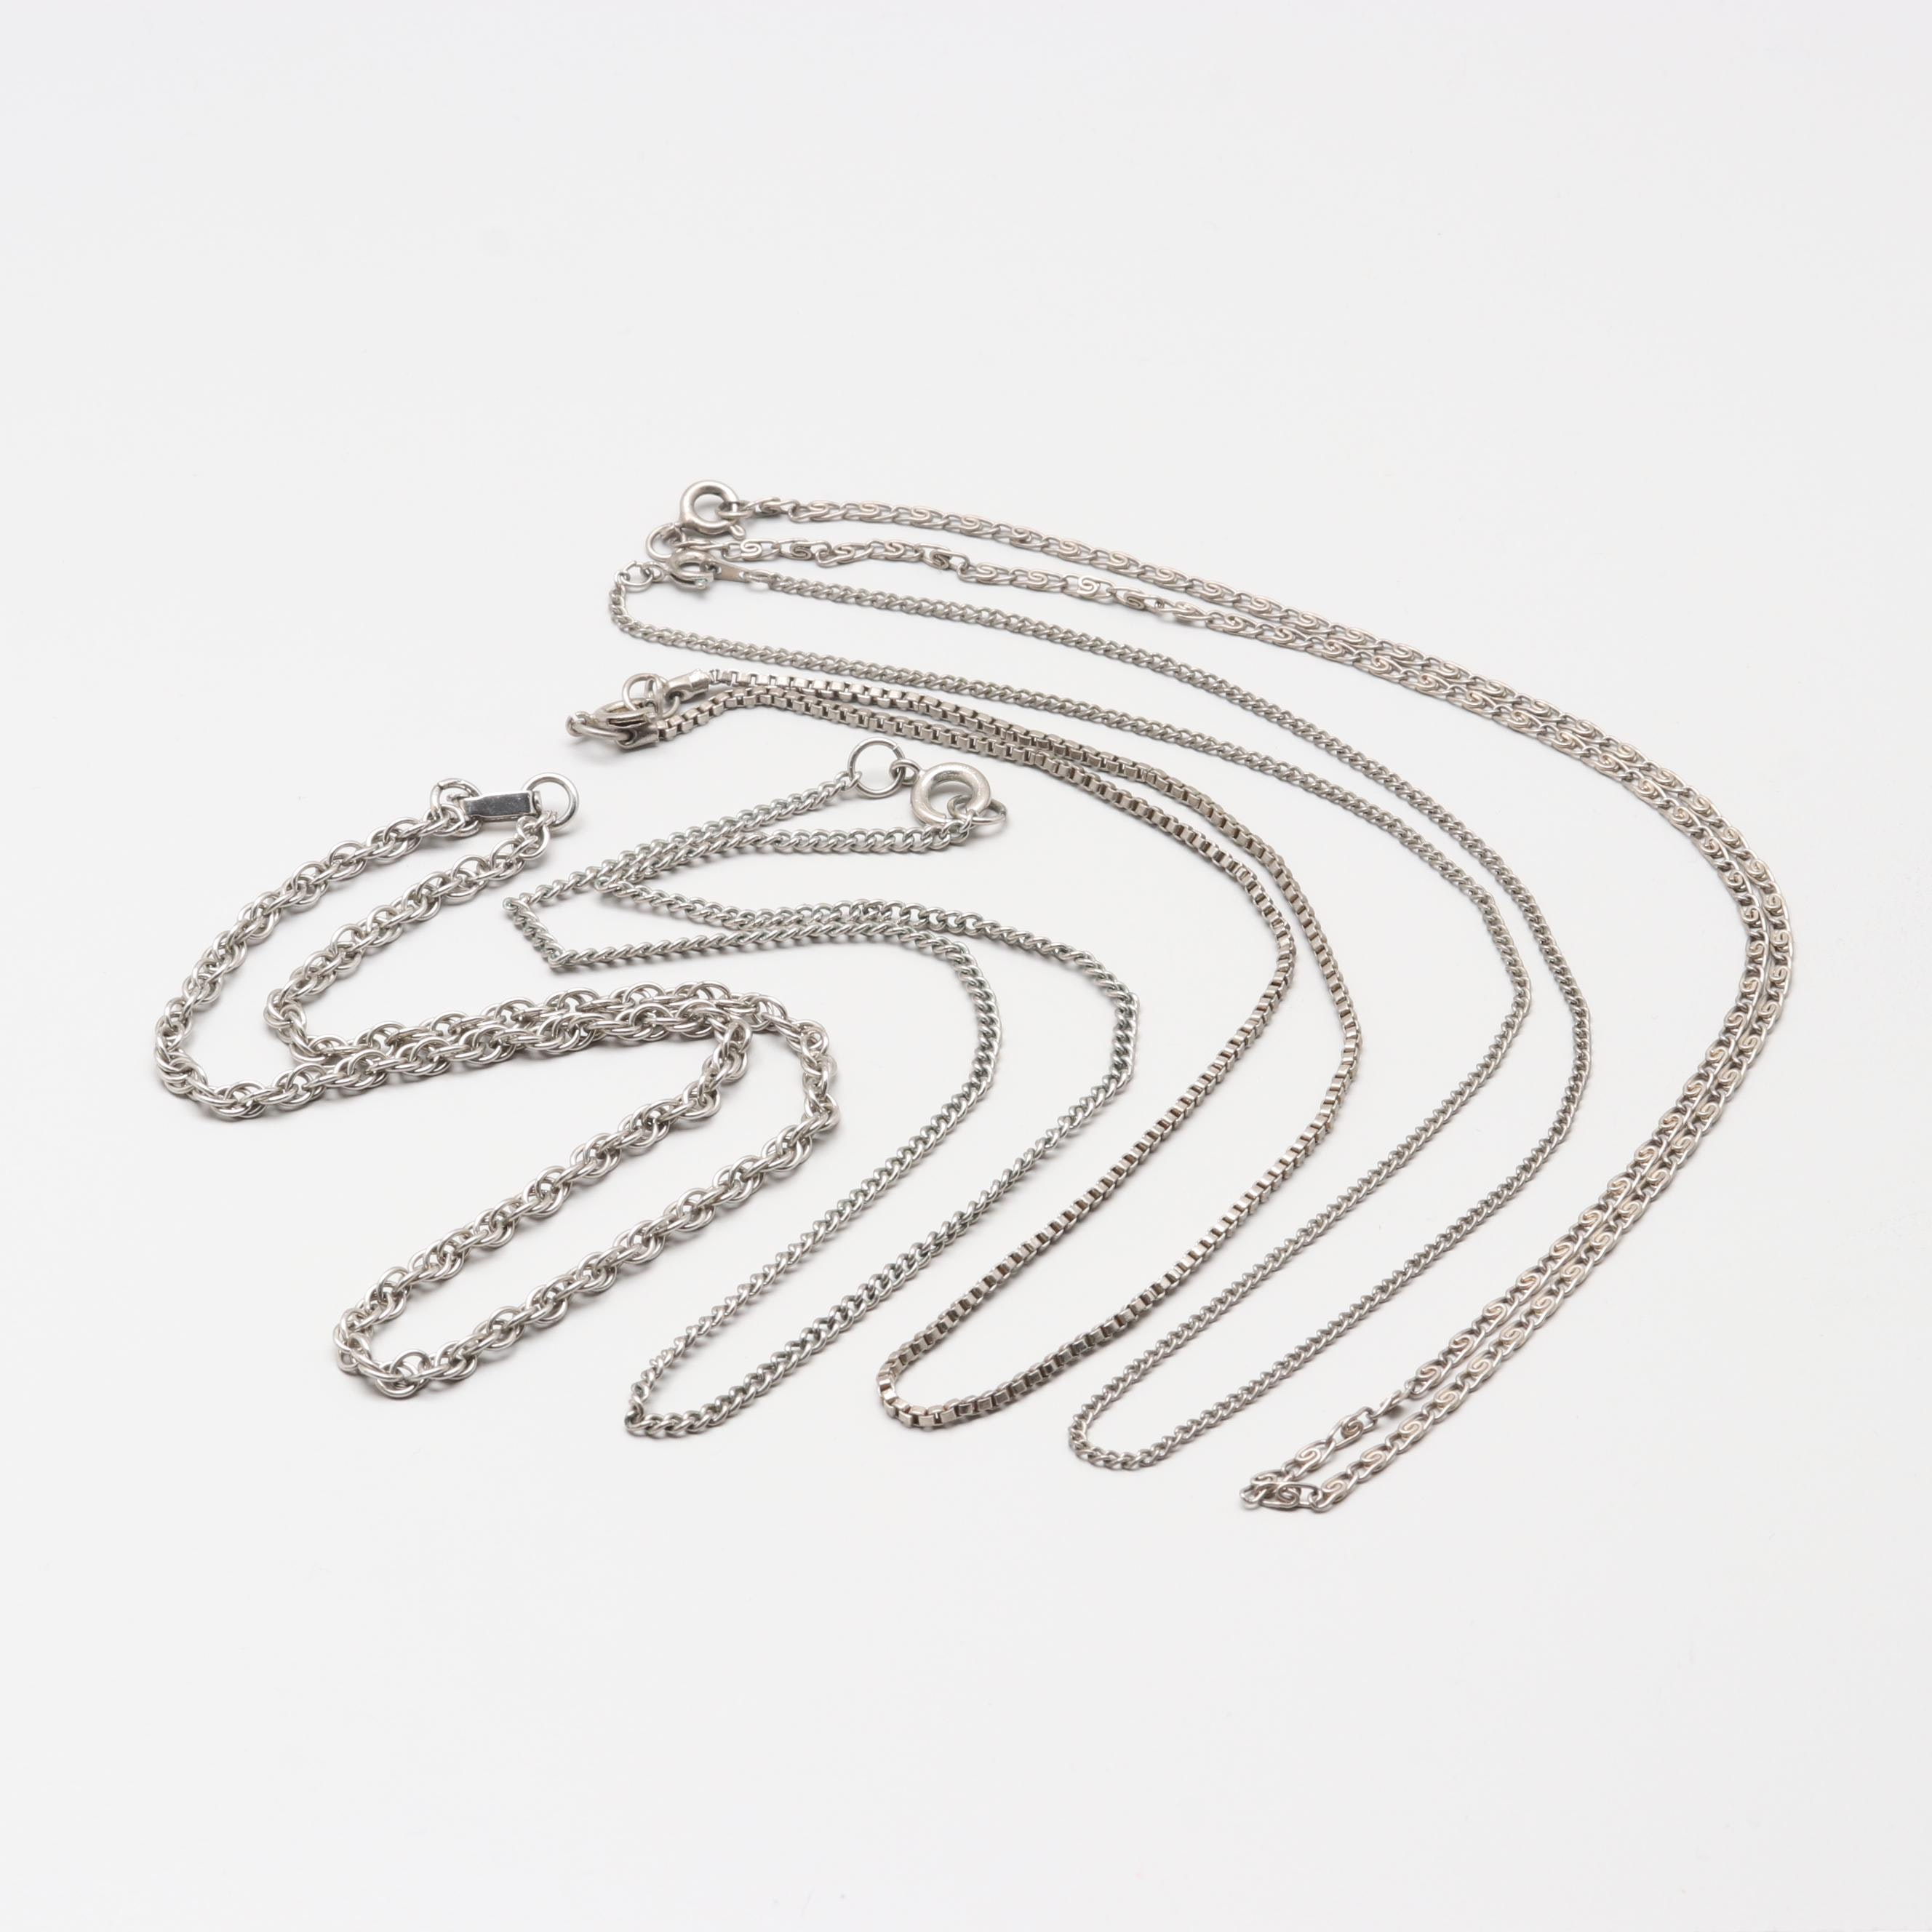 Silver Tone Chain Link Necklace Assortment